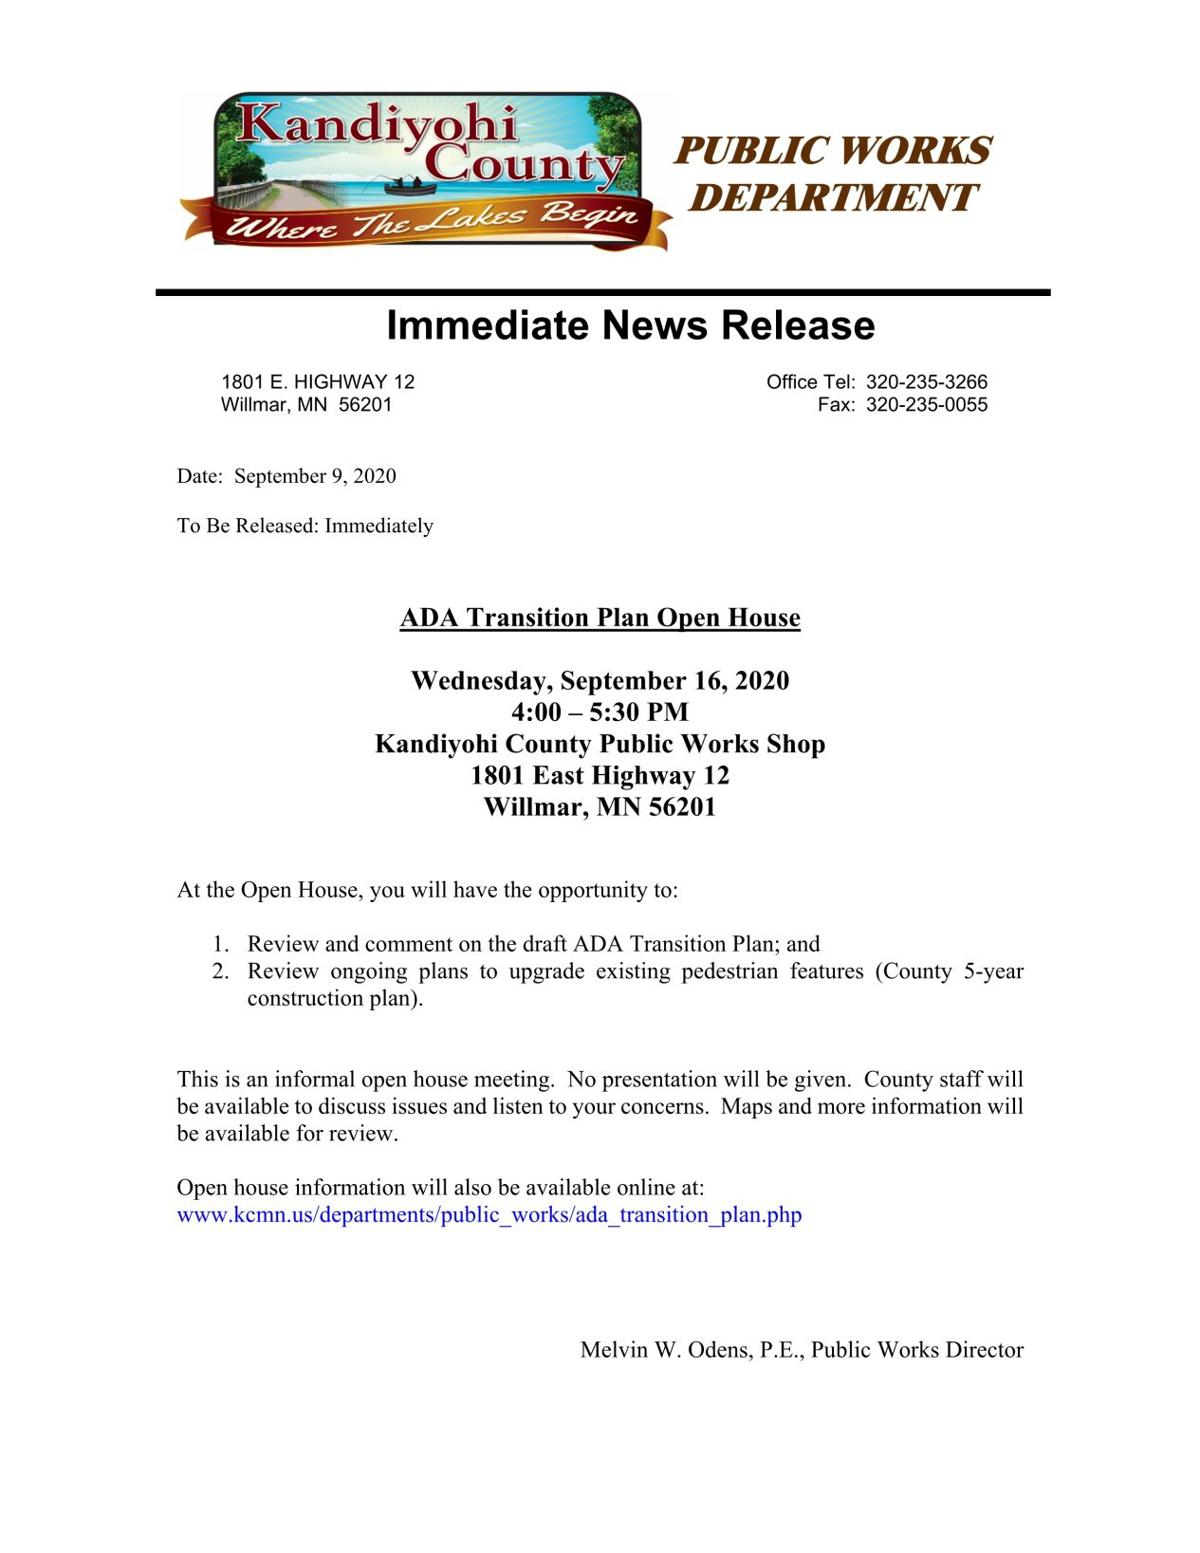 ADA Transition Plan Open House